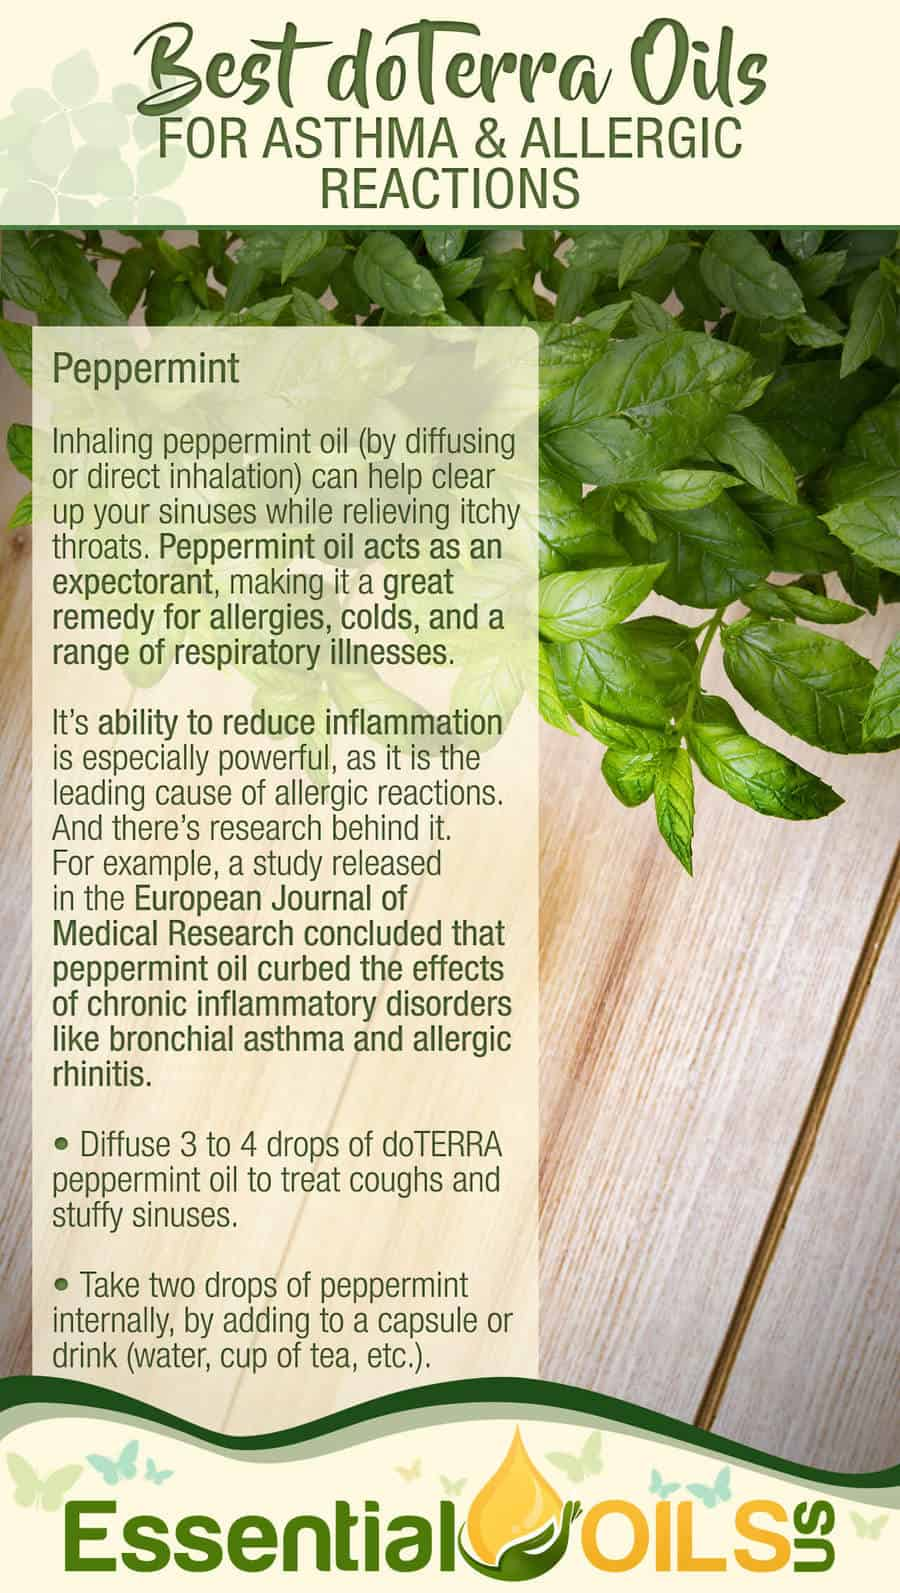 doTerra Essential Oils For Asthma And Allergy - Peppermint